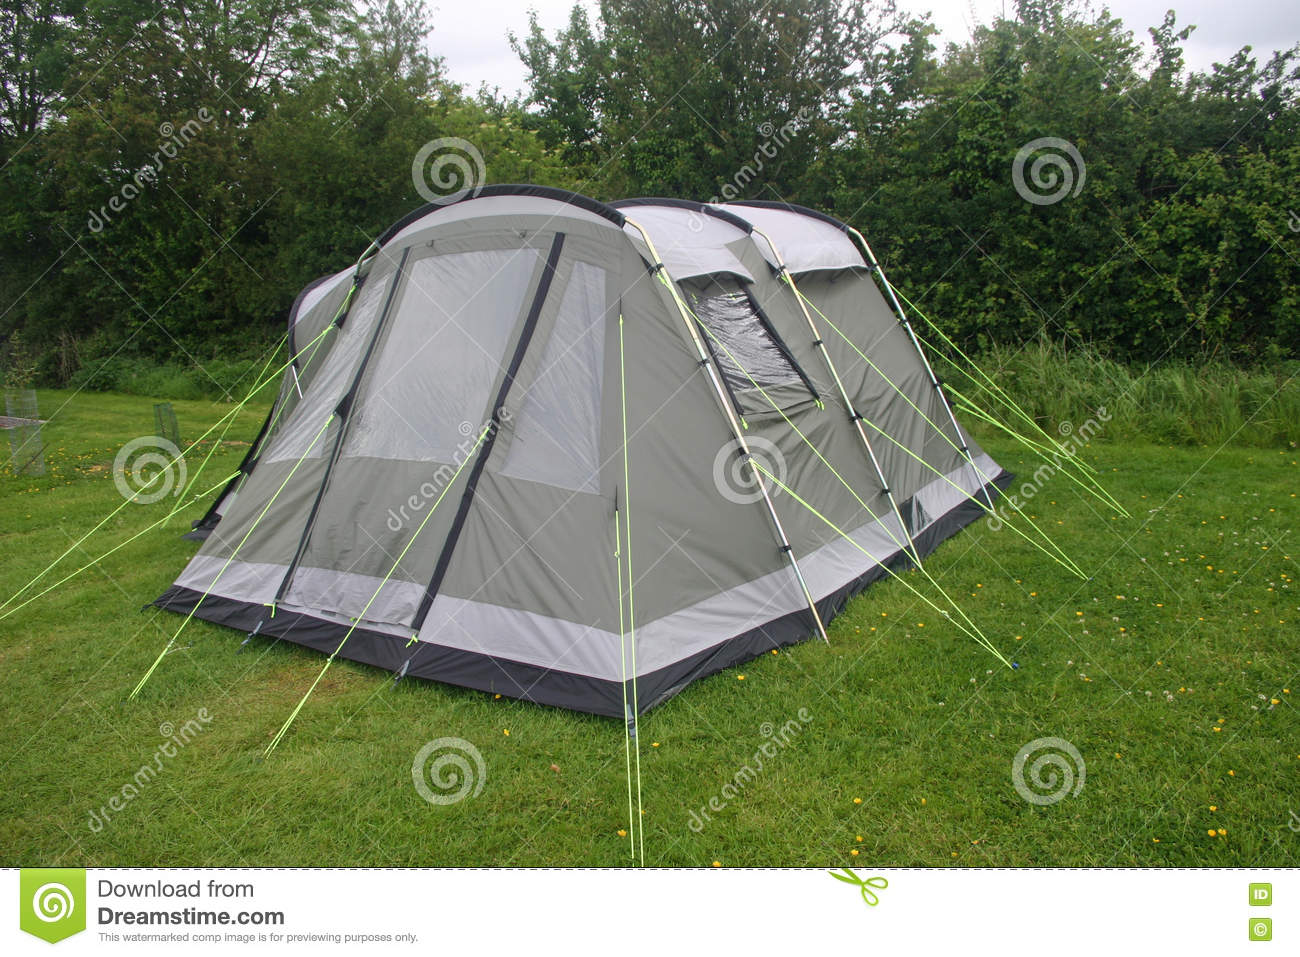 Grey and green four person tent with black sown-in groundsheet. Well guyed with bright yellow guy ropes. Erected on a grass area with trees and sky in the ... & Tent with guy ropes stock photo. Image of grass black - 79817904